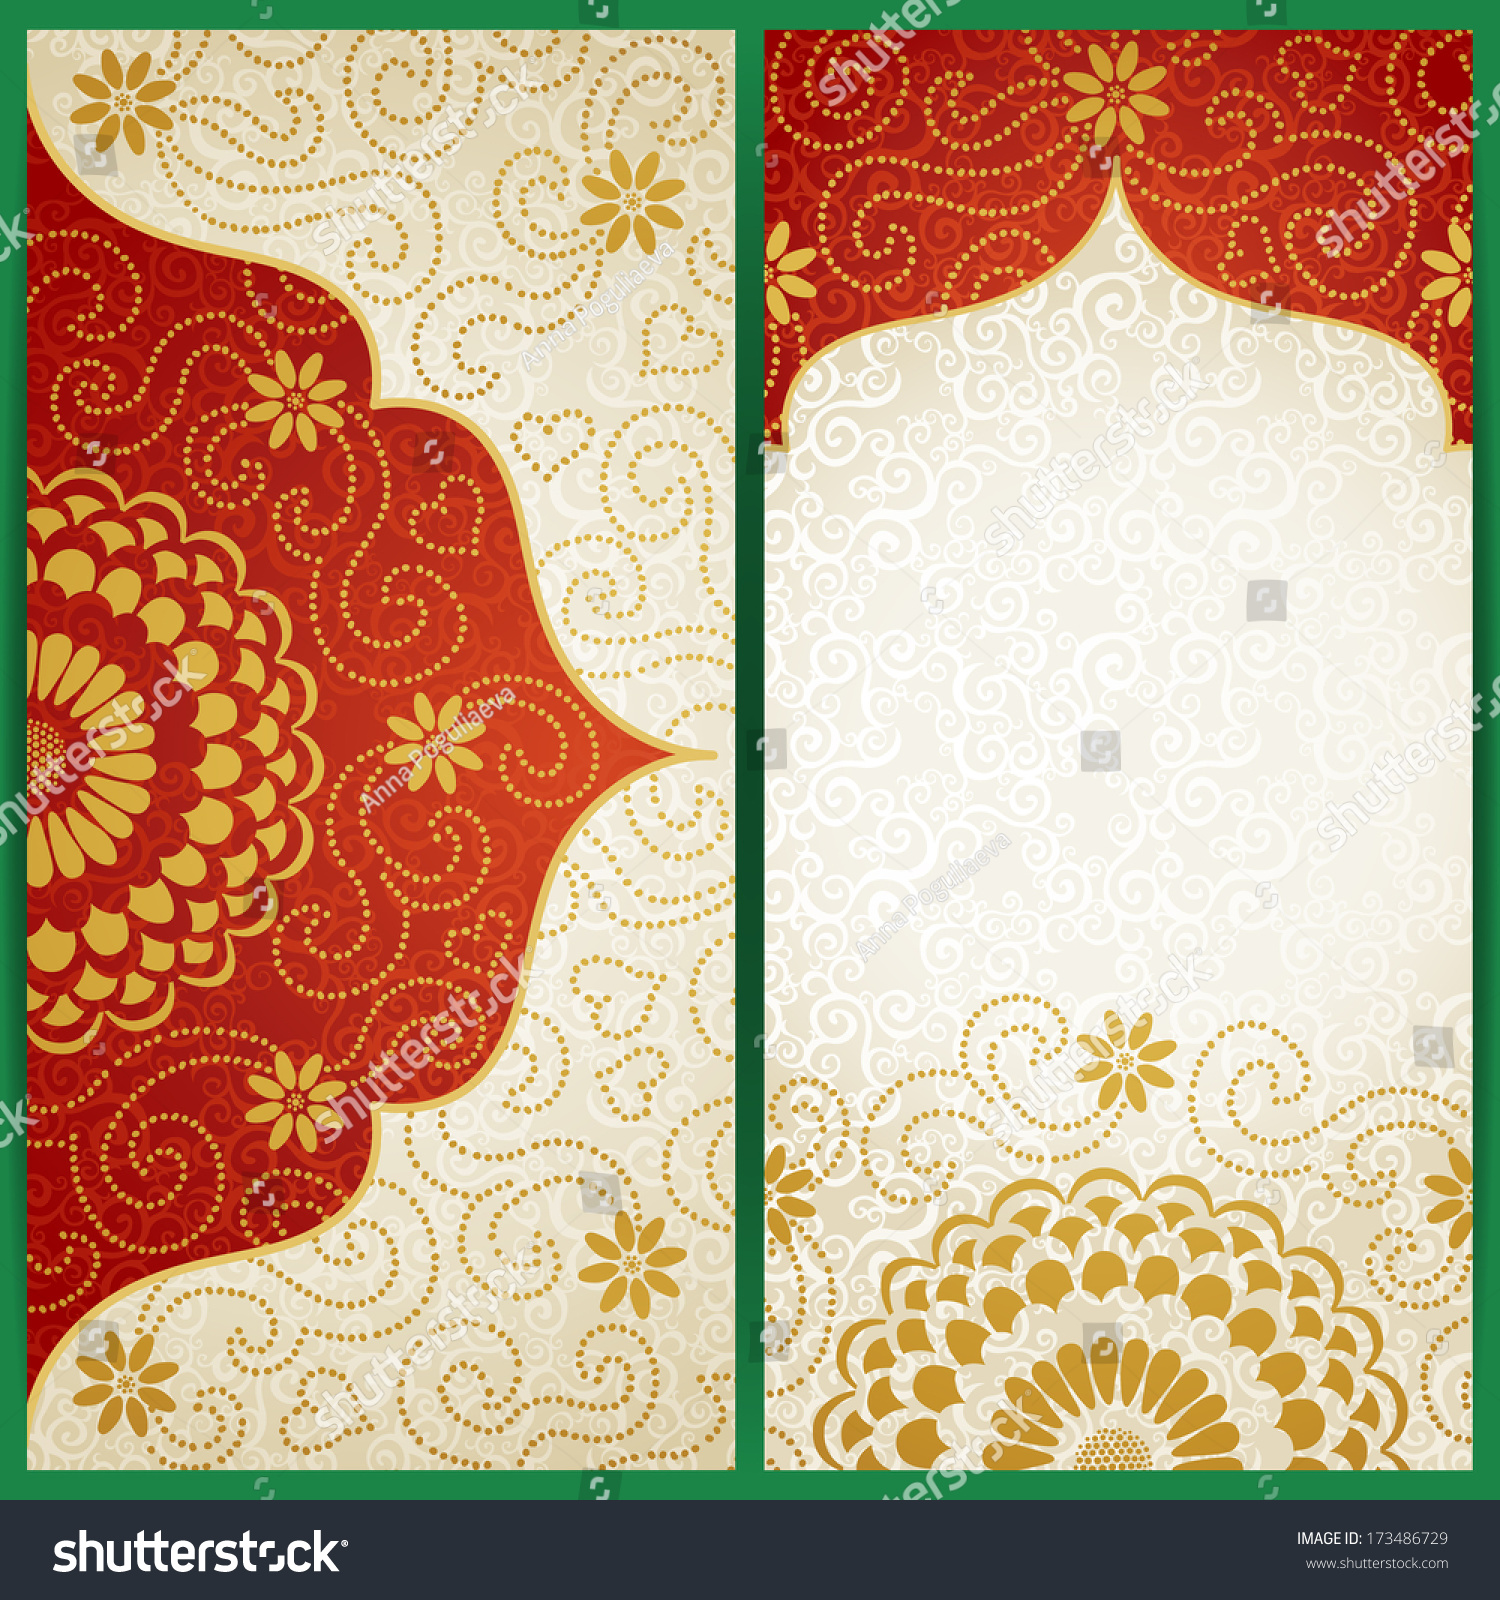 Vintage Cards Flowers Curls Background Vector Stock Vector (Royalty ...